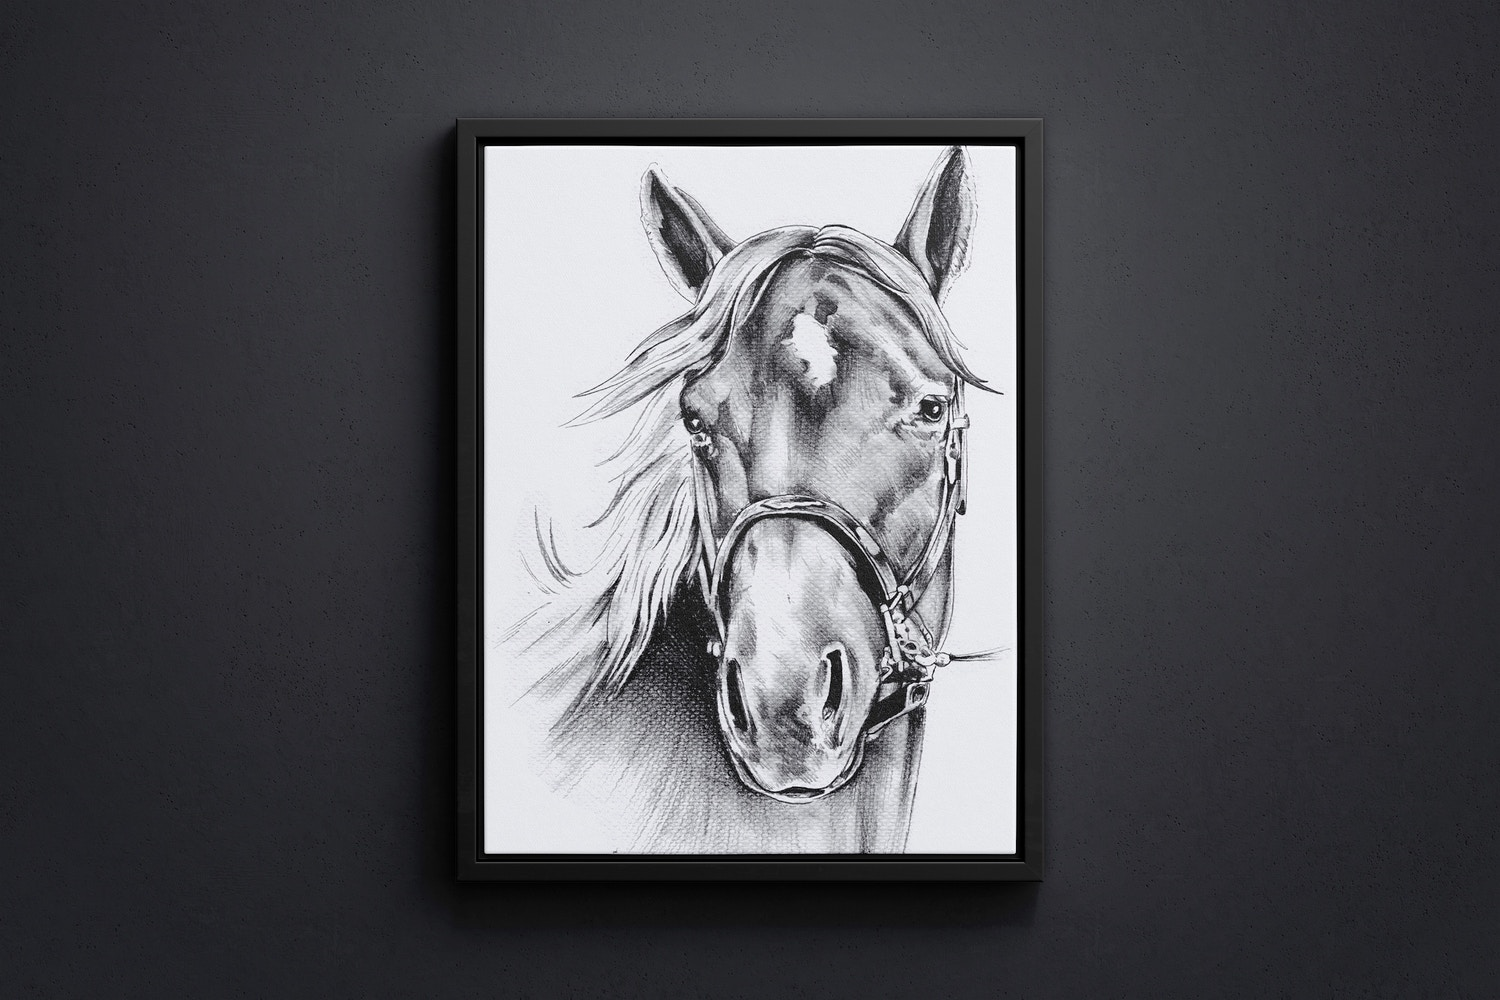 3:4 Portrait Canvas Mockup in Floater Frame, Front View